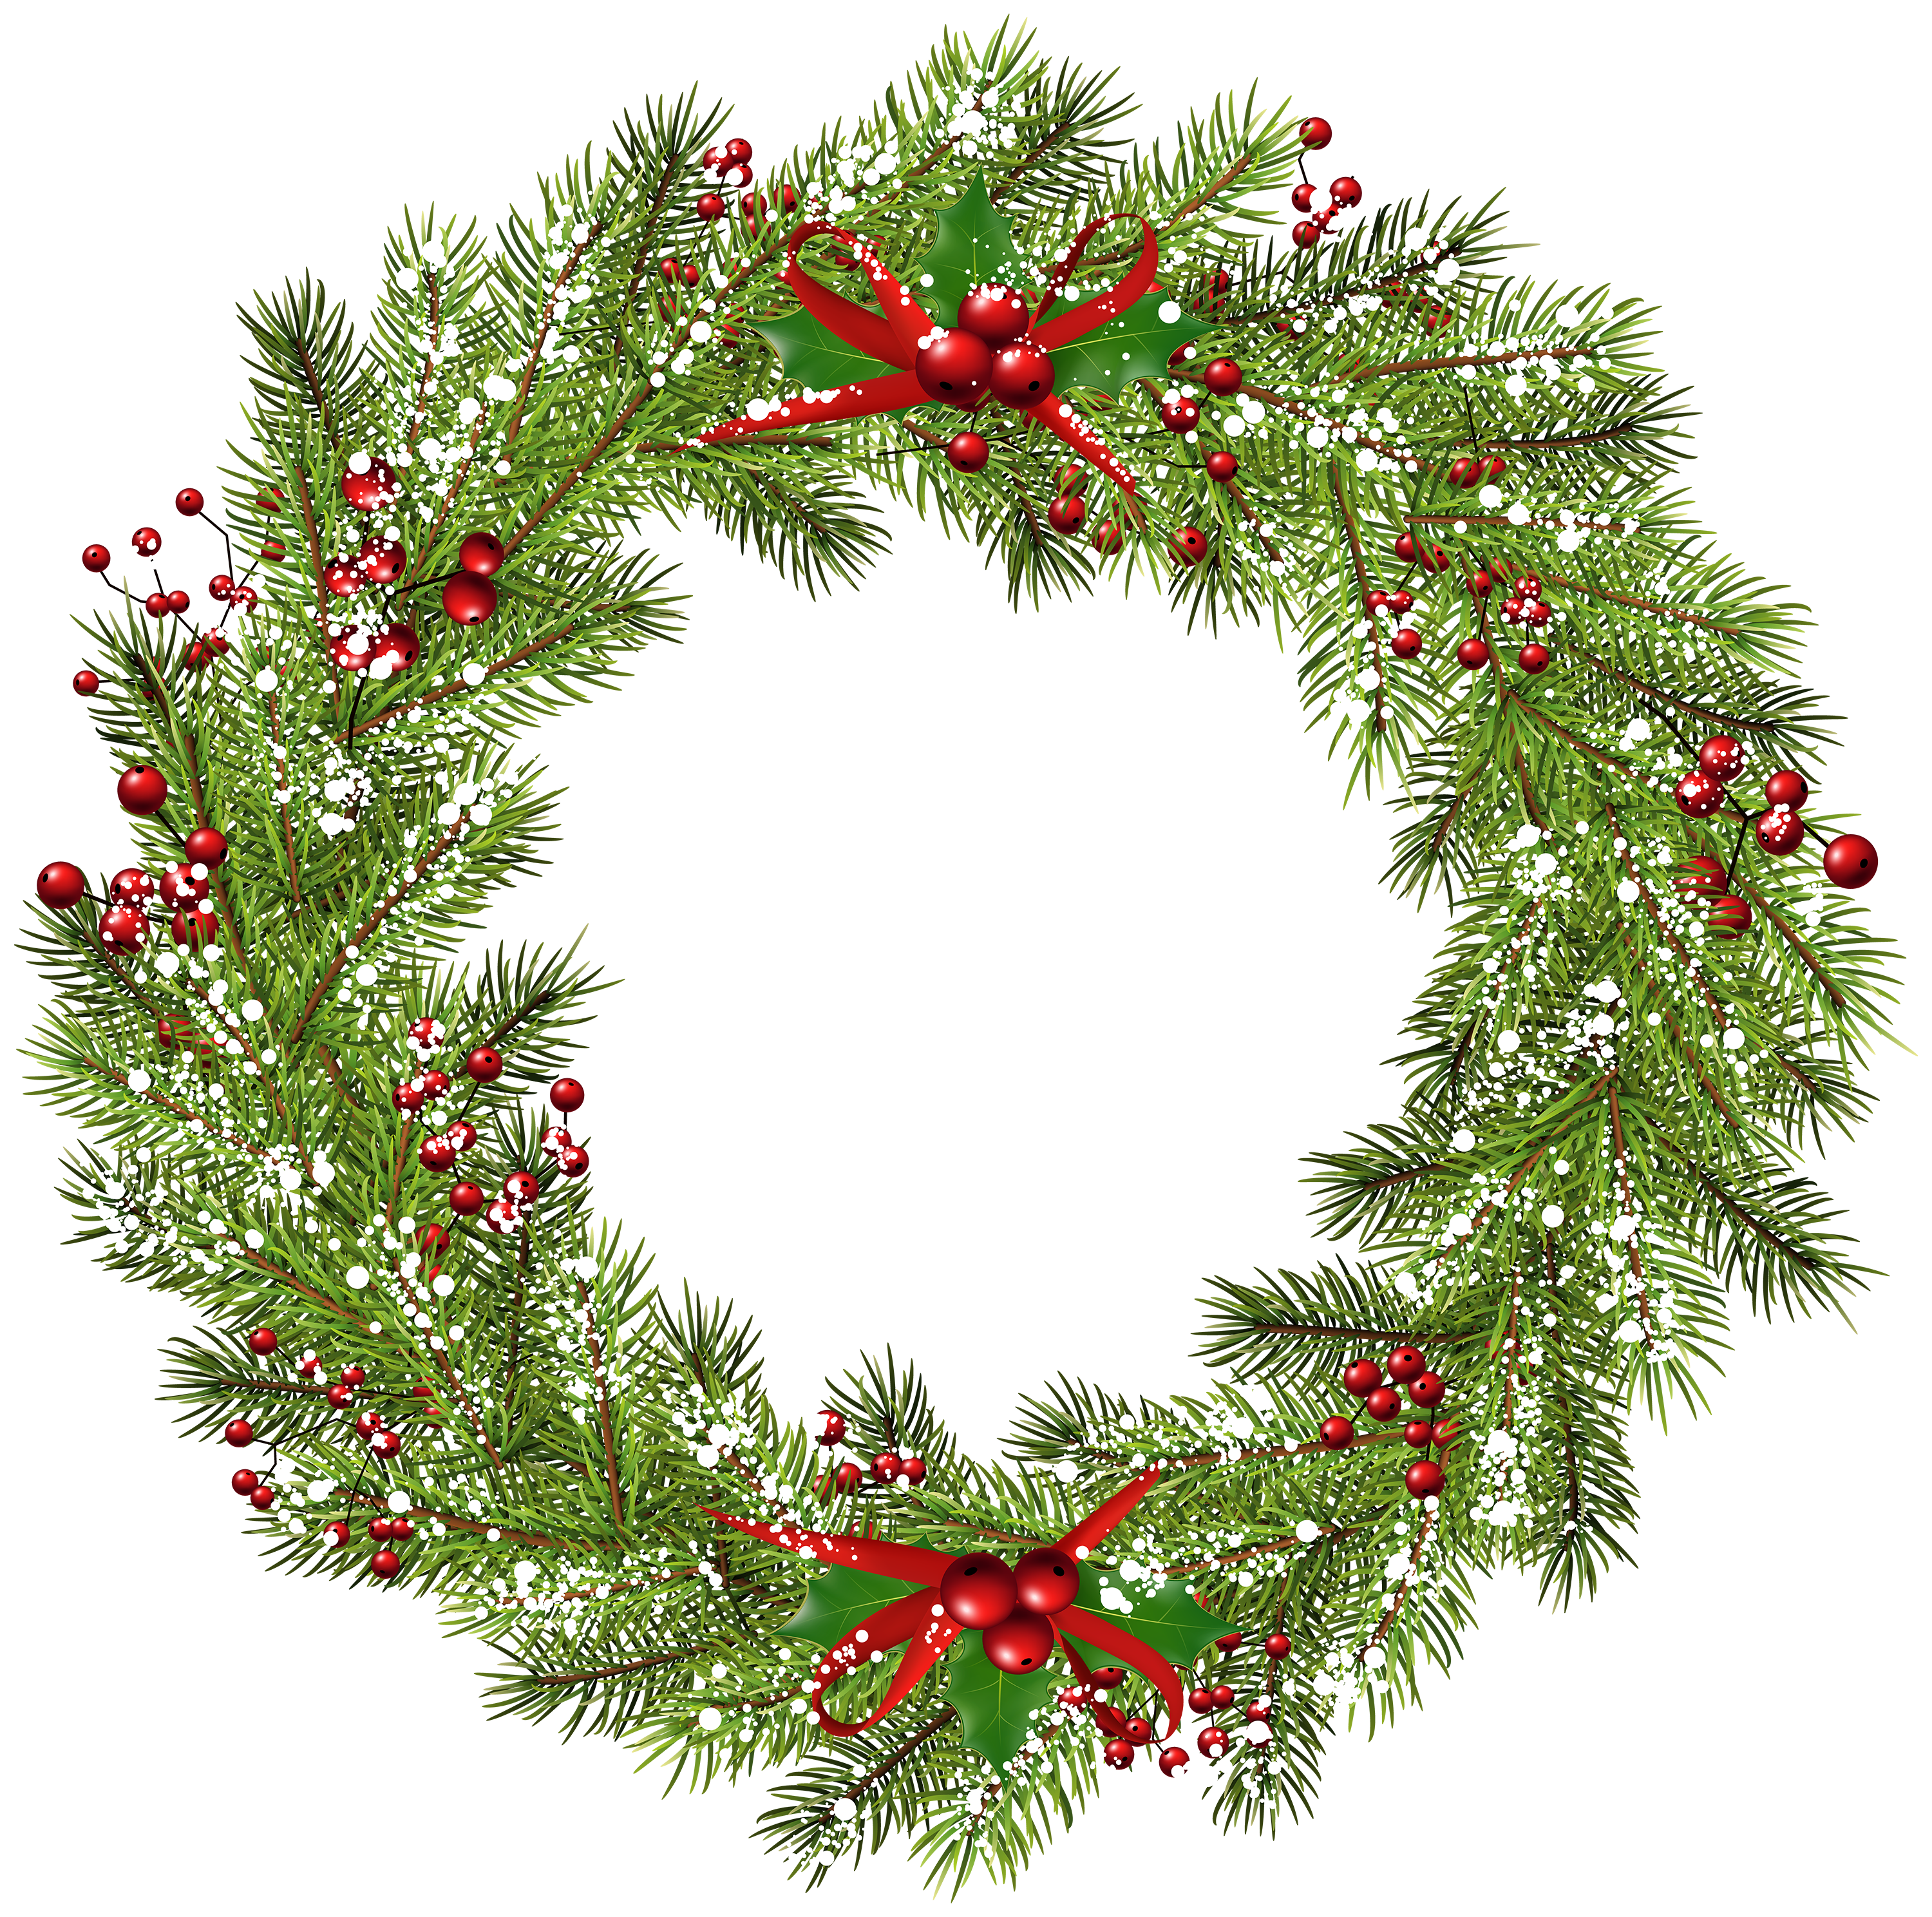 Christmas Wreath Png Clip Art Image Gallery Yopriceville High Quality Images And Transparent Png Free Clipart Art Images Clip Art Free Clip Art